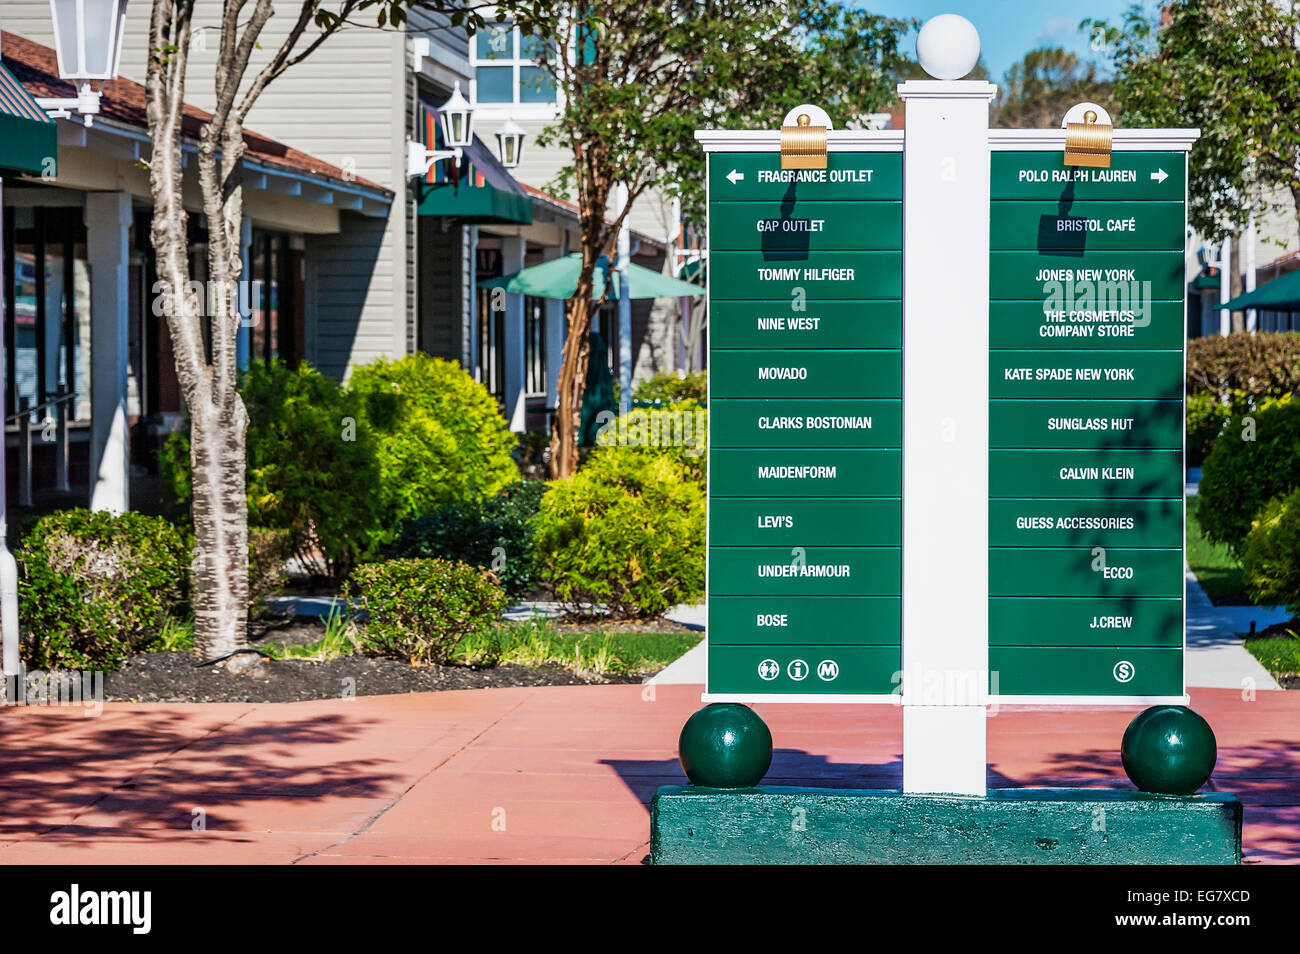 Mall Directory Stock Photos & Mall Directory Stock Images - Alamy